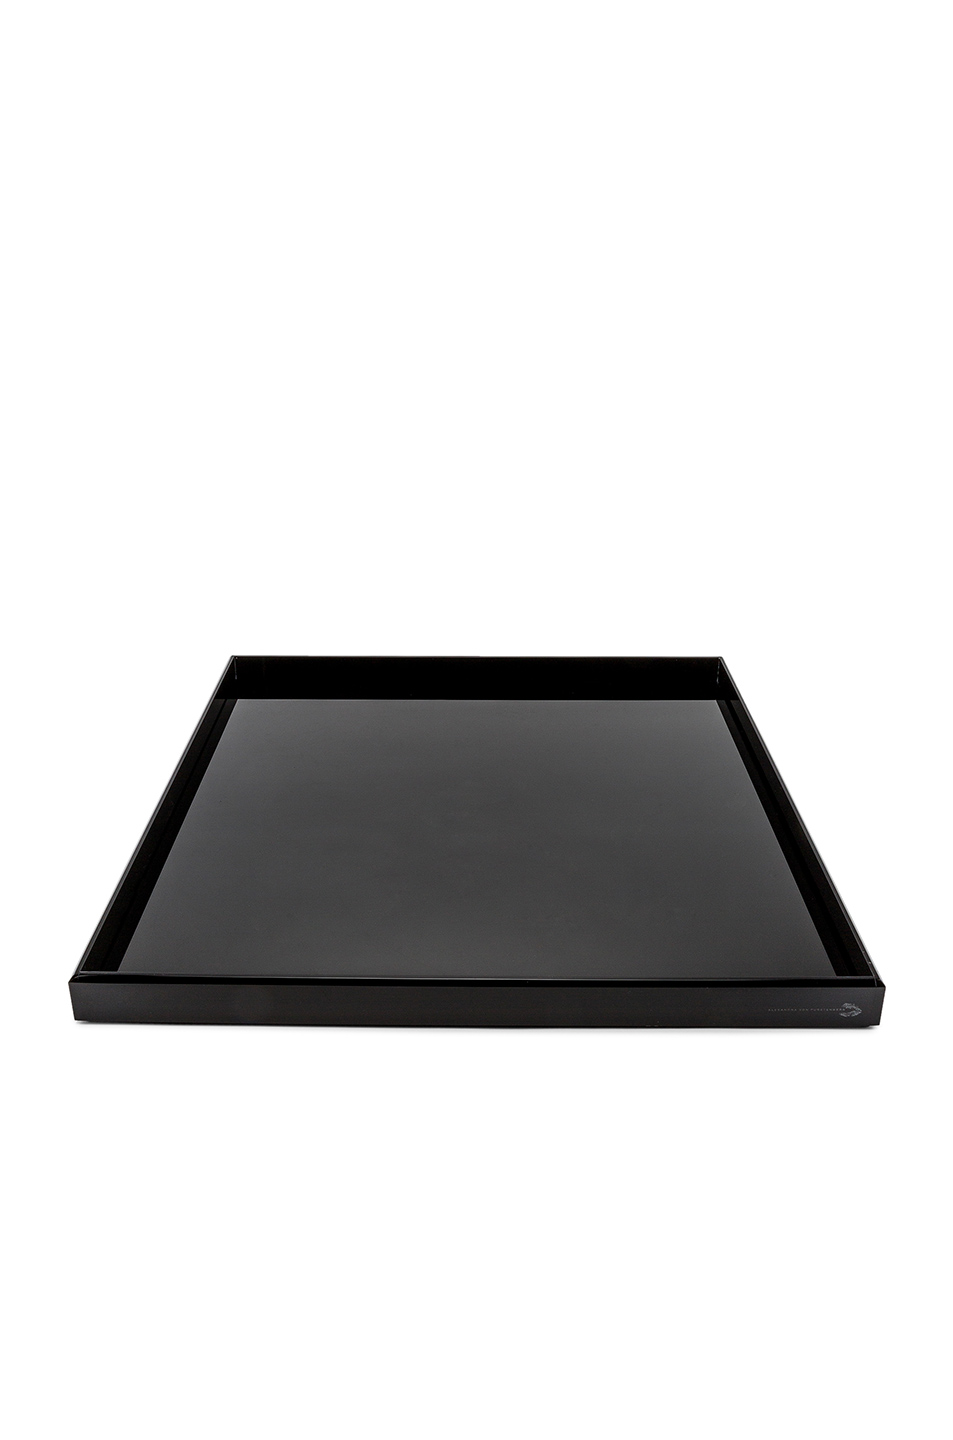 Alexandra Von Furstenberg Voltage Vanity Tray in Black